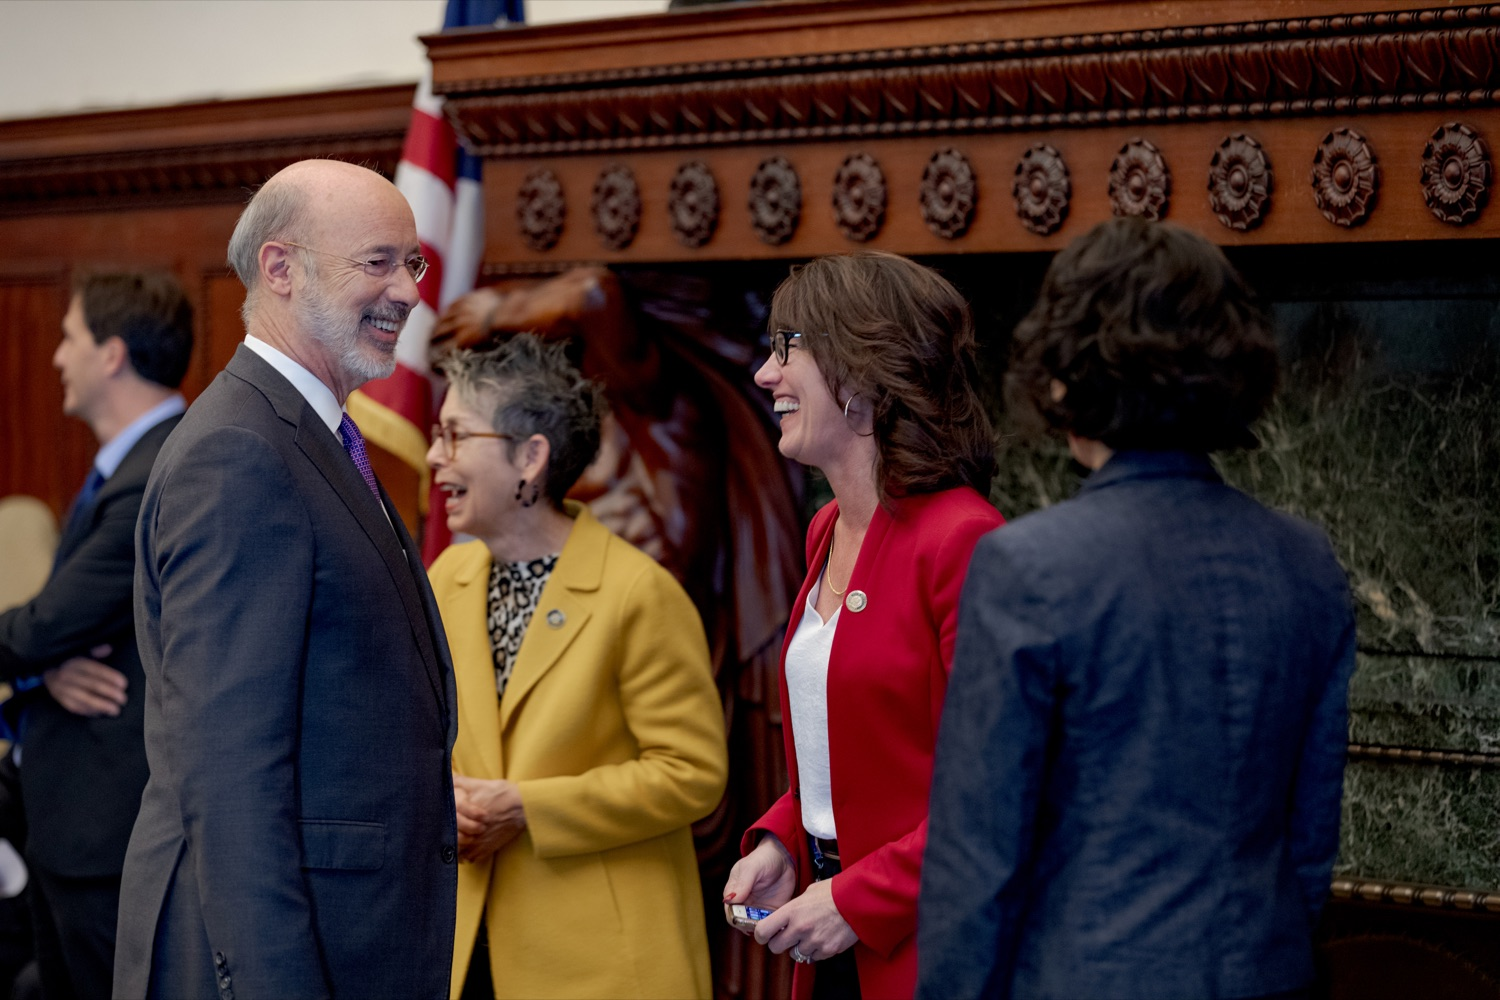 "<a href=""http://filesource.abacast.com/commonwealthofpa/photo/17556_GOV_Heartbeat_Bill_NK_004.JPG"" target=""_blank"">⇣ Download Photo<br></a>Pennsylvania Governor Tom Wolf smiles with Rep. Mary Jo Daley, center left, and Rep. Mary Isaacson, center right, before a rally against the Heartbeat Bill and in support of women's reproductive rights inside Philadelphia City Hall on Friday, November 1, 2019."